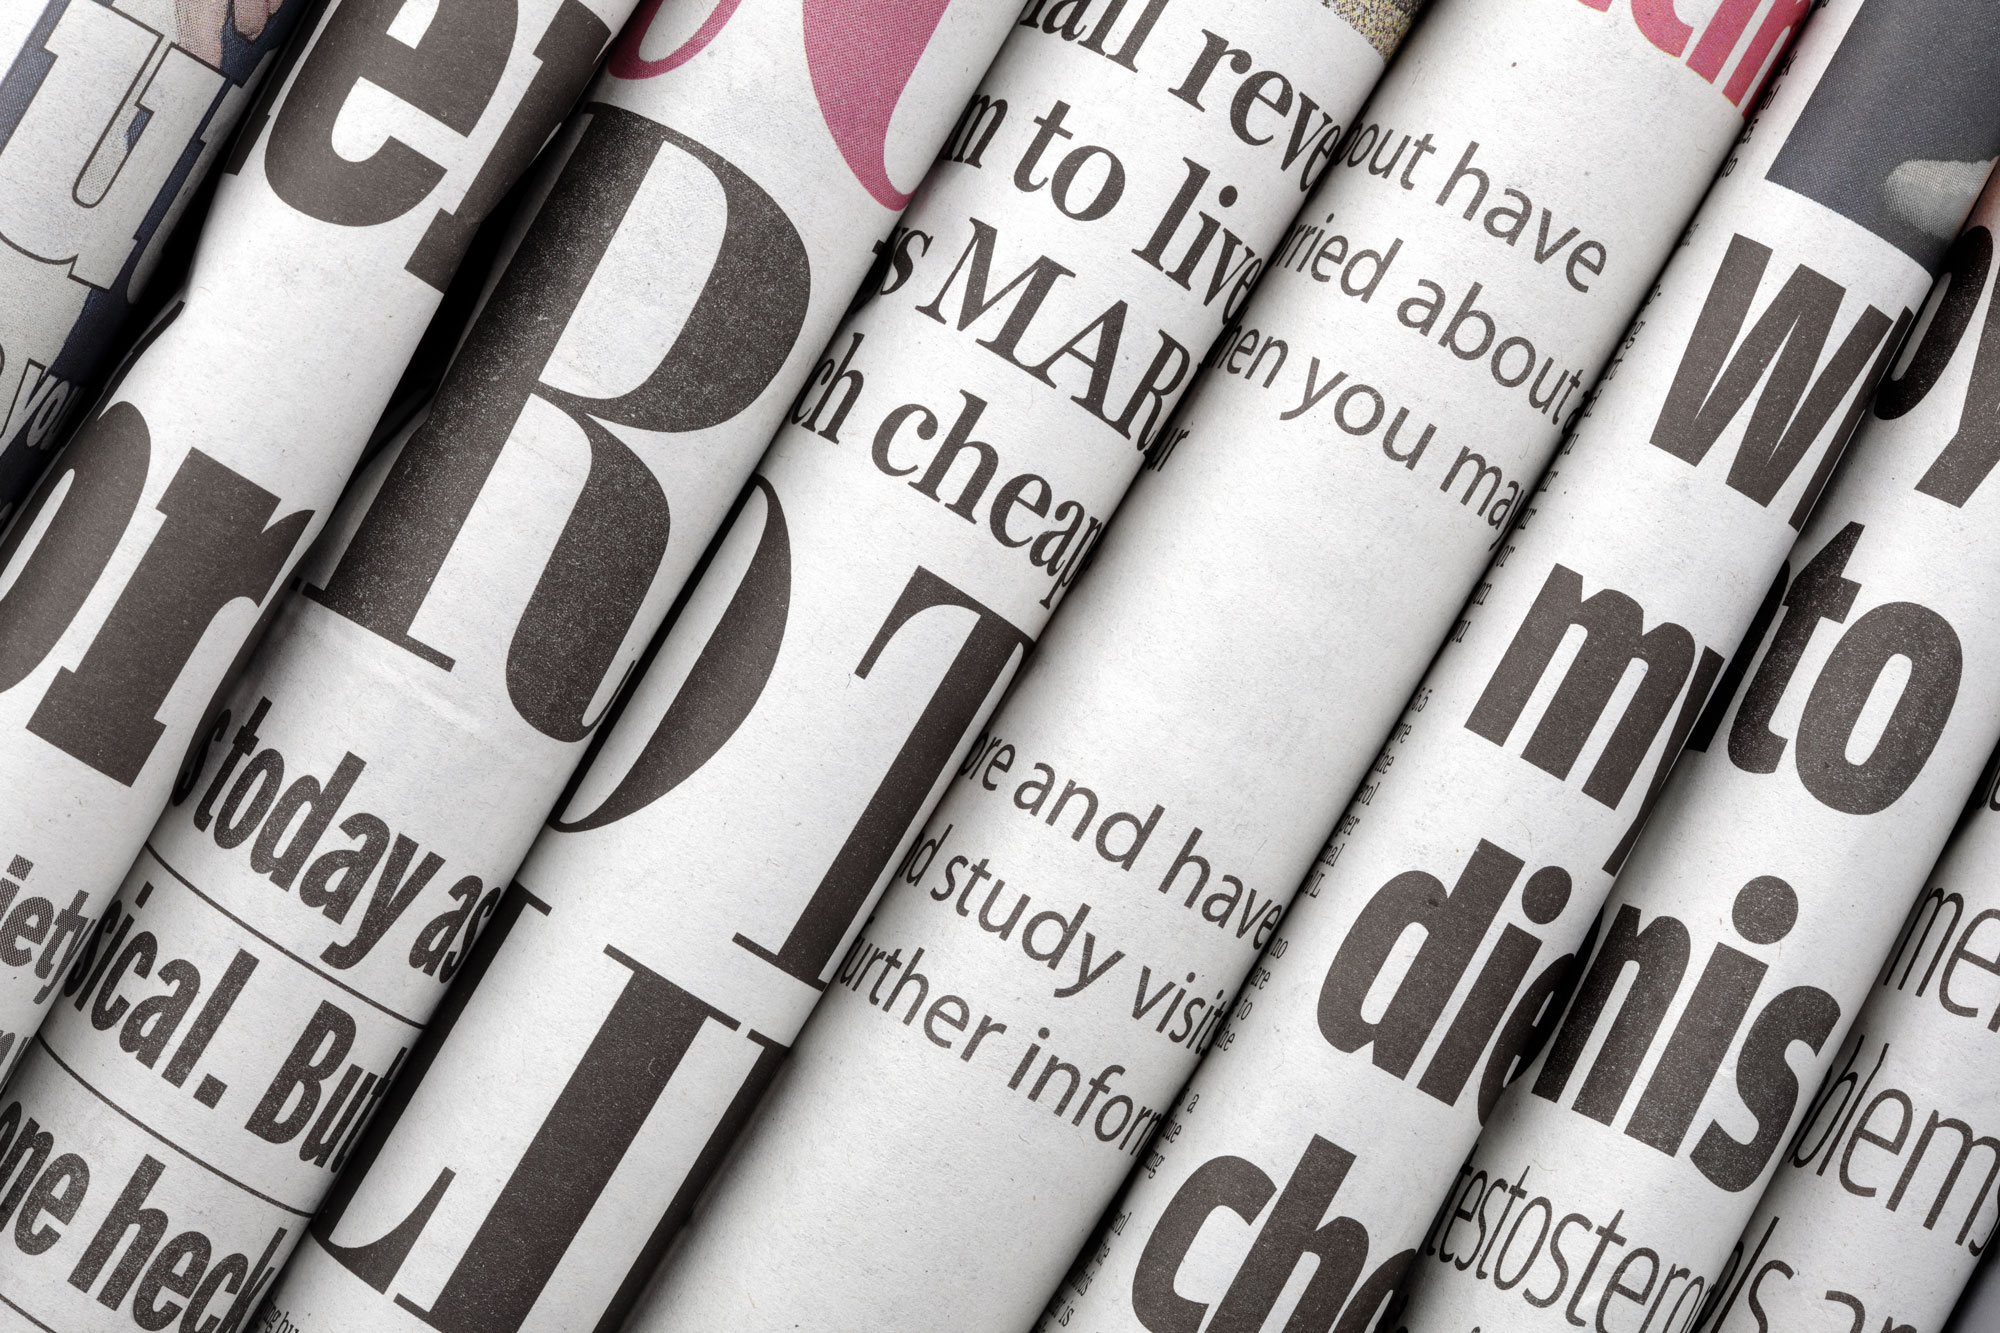 newspaper journalism terms The skills learned on a local or regional newspaper, or through a training scheme, are relevant to reporting in all media and there is more movement from newspapers to other types of journalism than vice versa.